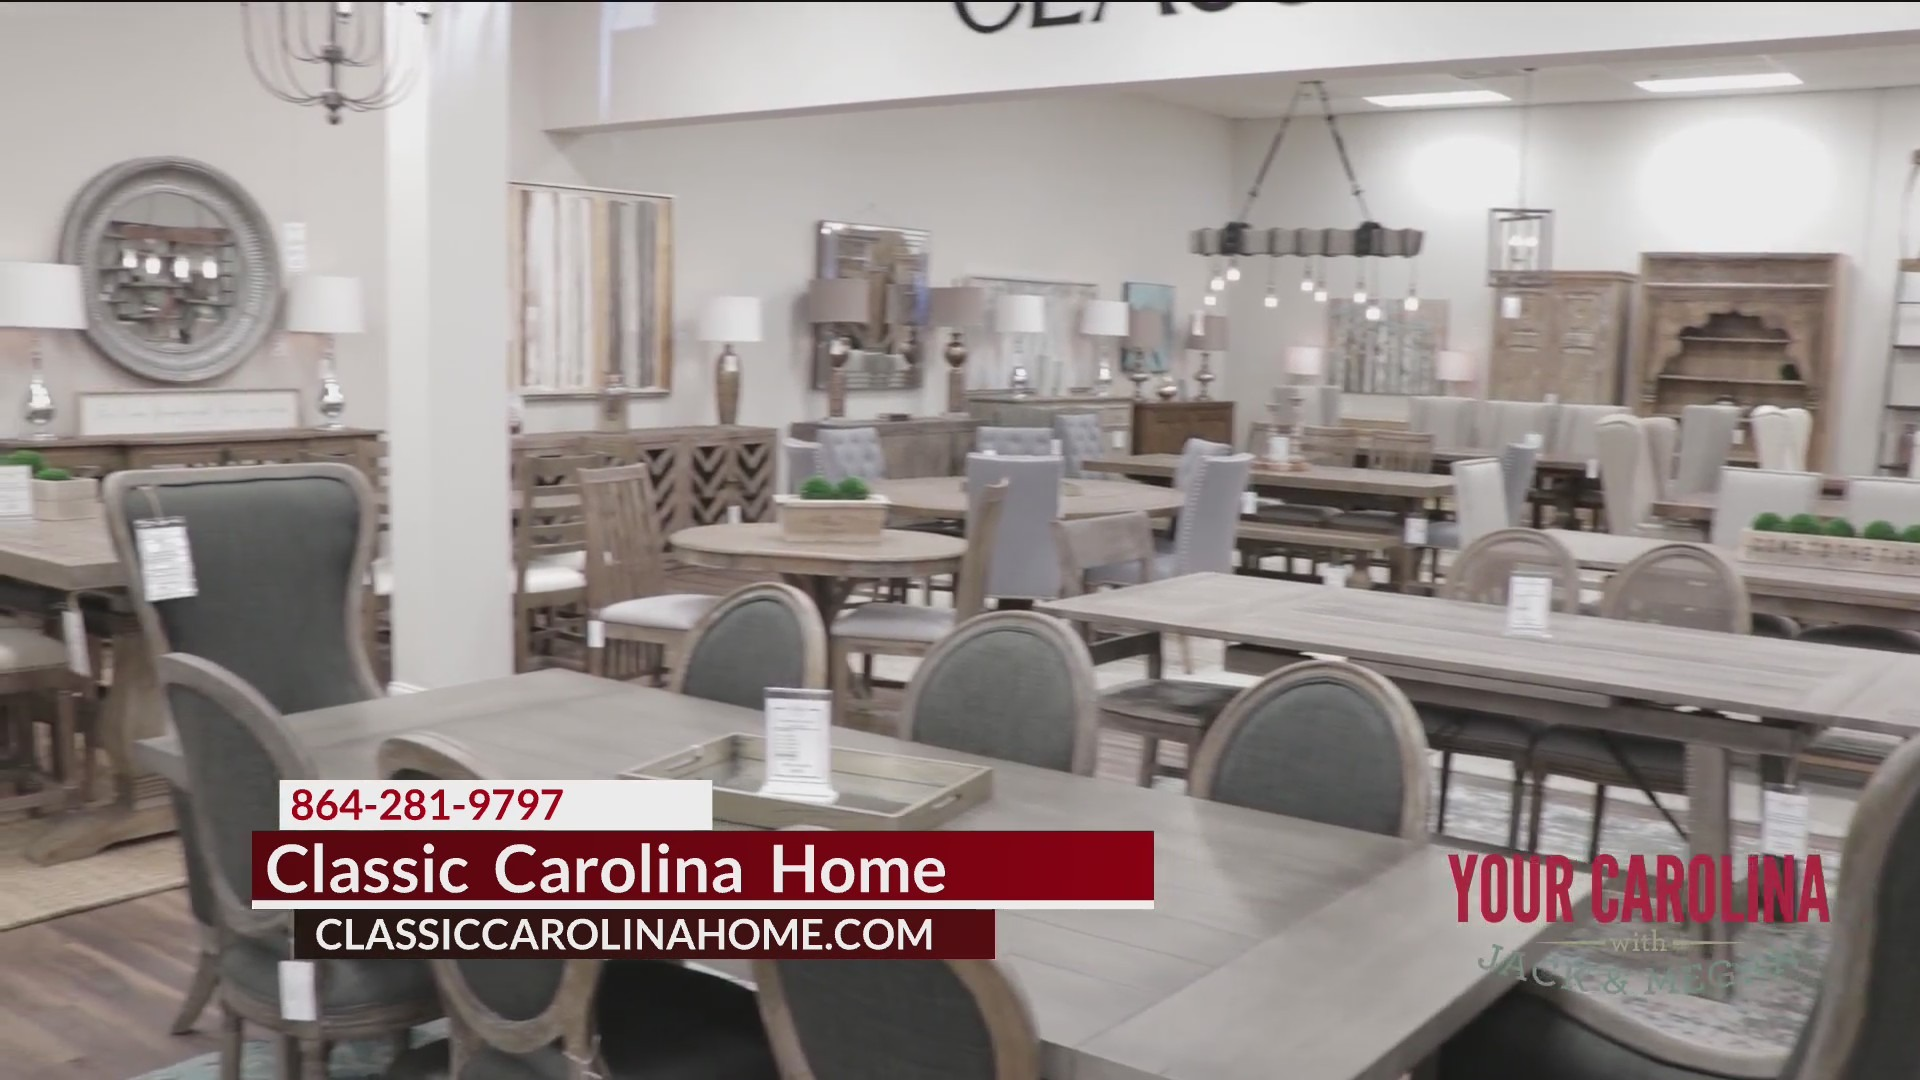 Show Off Your Dining Room With A New Table From Classic Carolina Home